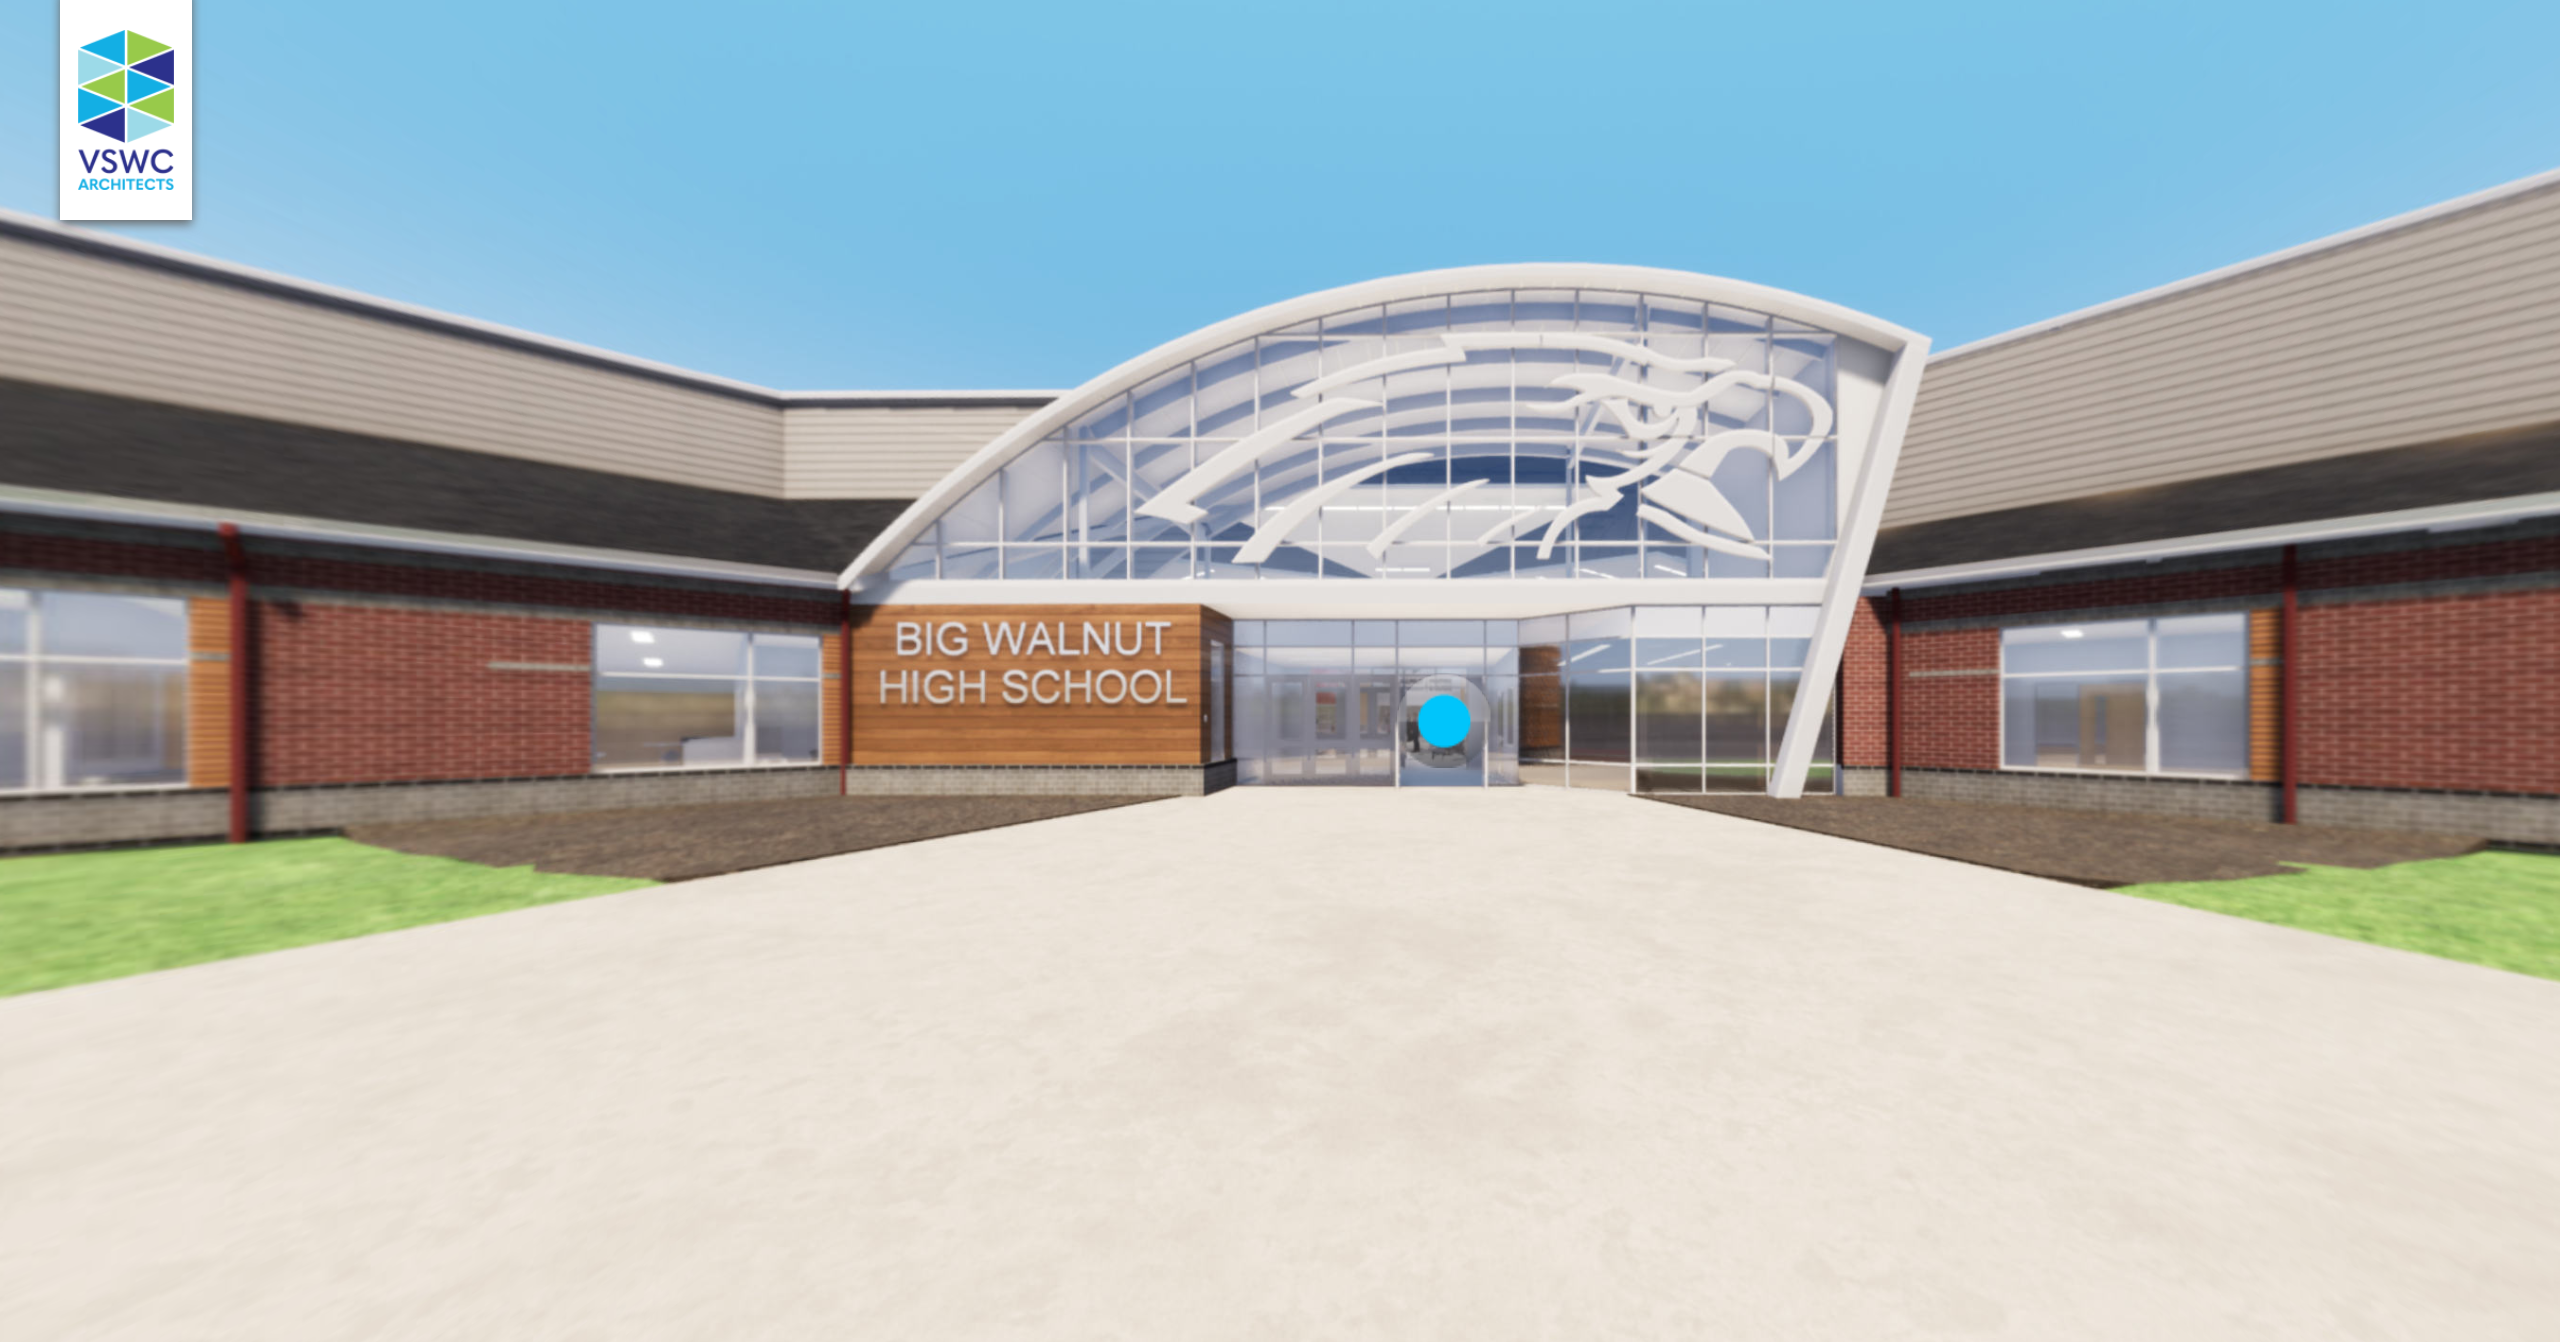 Snapshot of virtual tour lobby of new Big Walnut High School